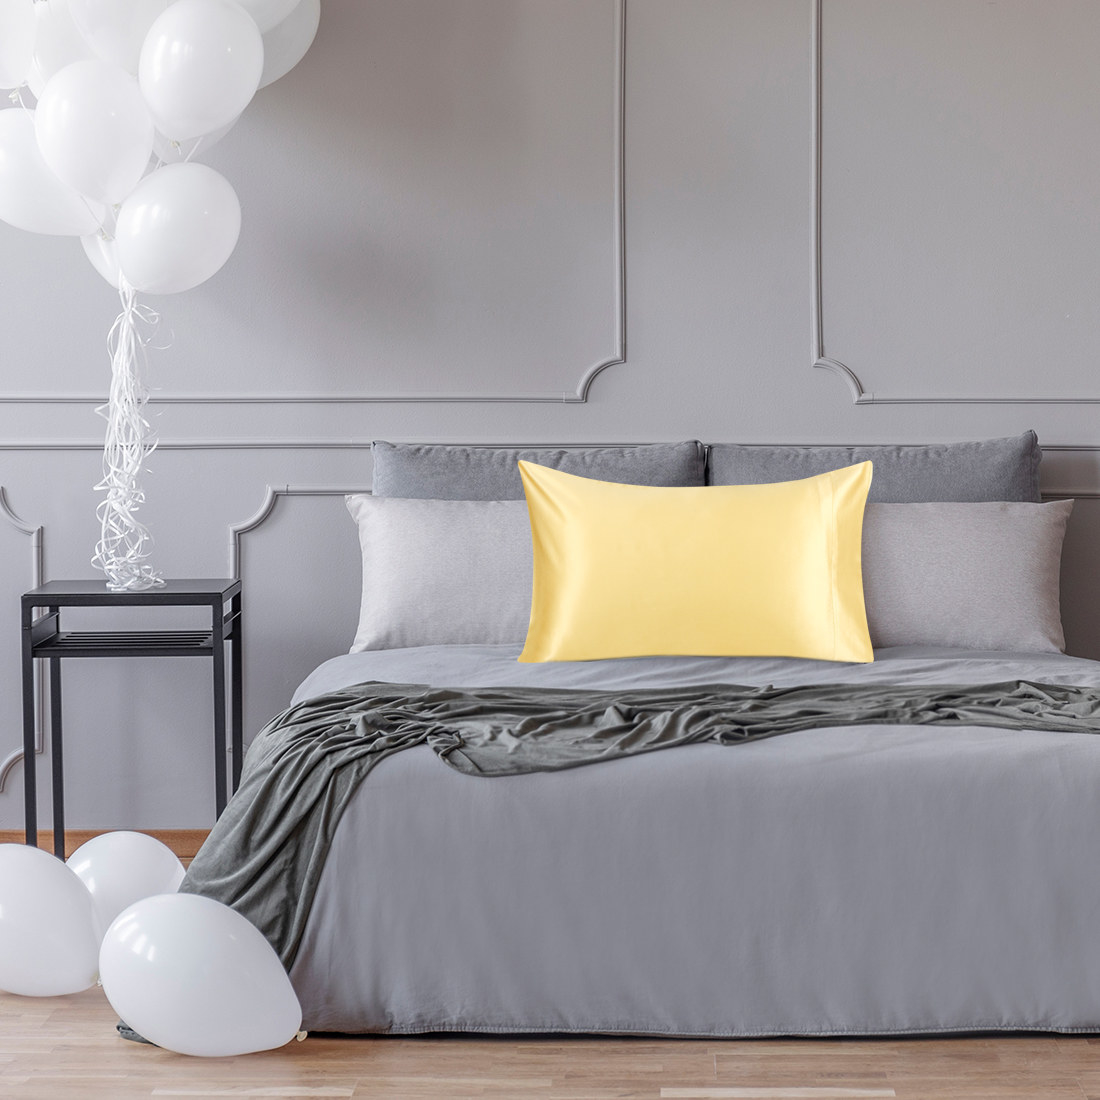 The silk pillowcase on bed in yellow